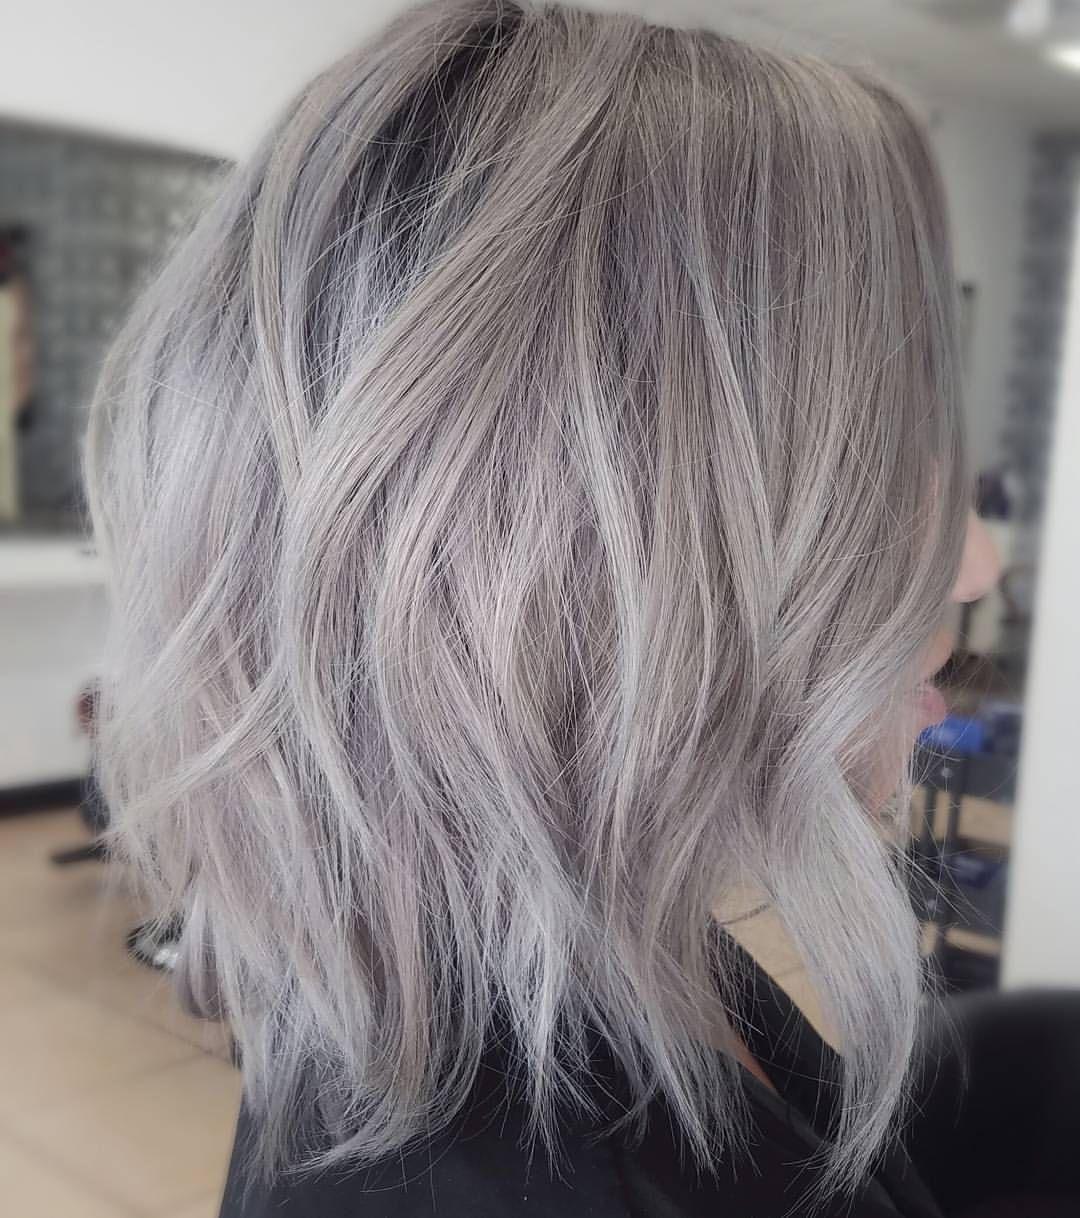 Pin by stephanie buzick on hairy situation pinterest hair